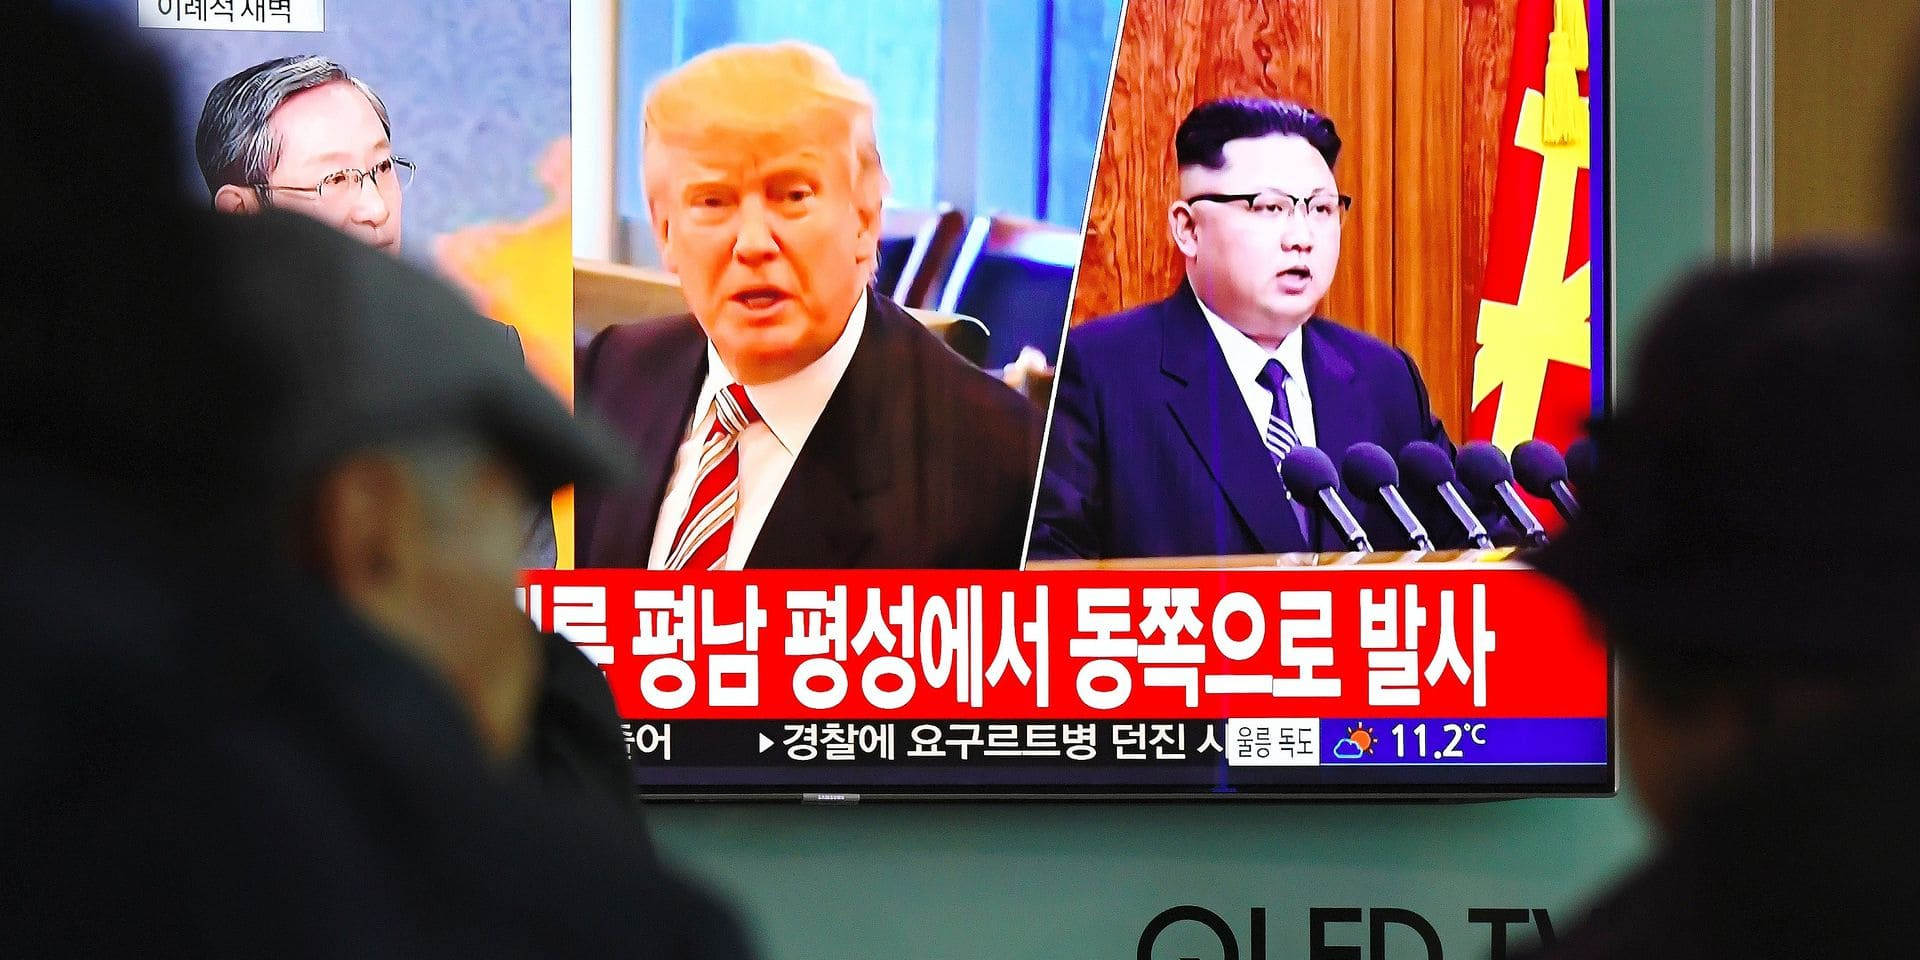 People watch a television news screen showing pictures of US President Donald Trump (C) and North Korean leader Kim Jong-Un (R) at a railway station in Seoul on November 29, 2017. North Korea test fired what appeared to be an intercontinental ballistic missile on November 29, in a major challenge to US President Donald Trump after he slapped fresh sanctions on Pyongyang and declared it a state sponsor of terrorism. / AFP PHOTO / JUNG Yeon-Je